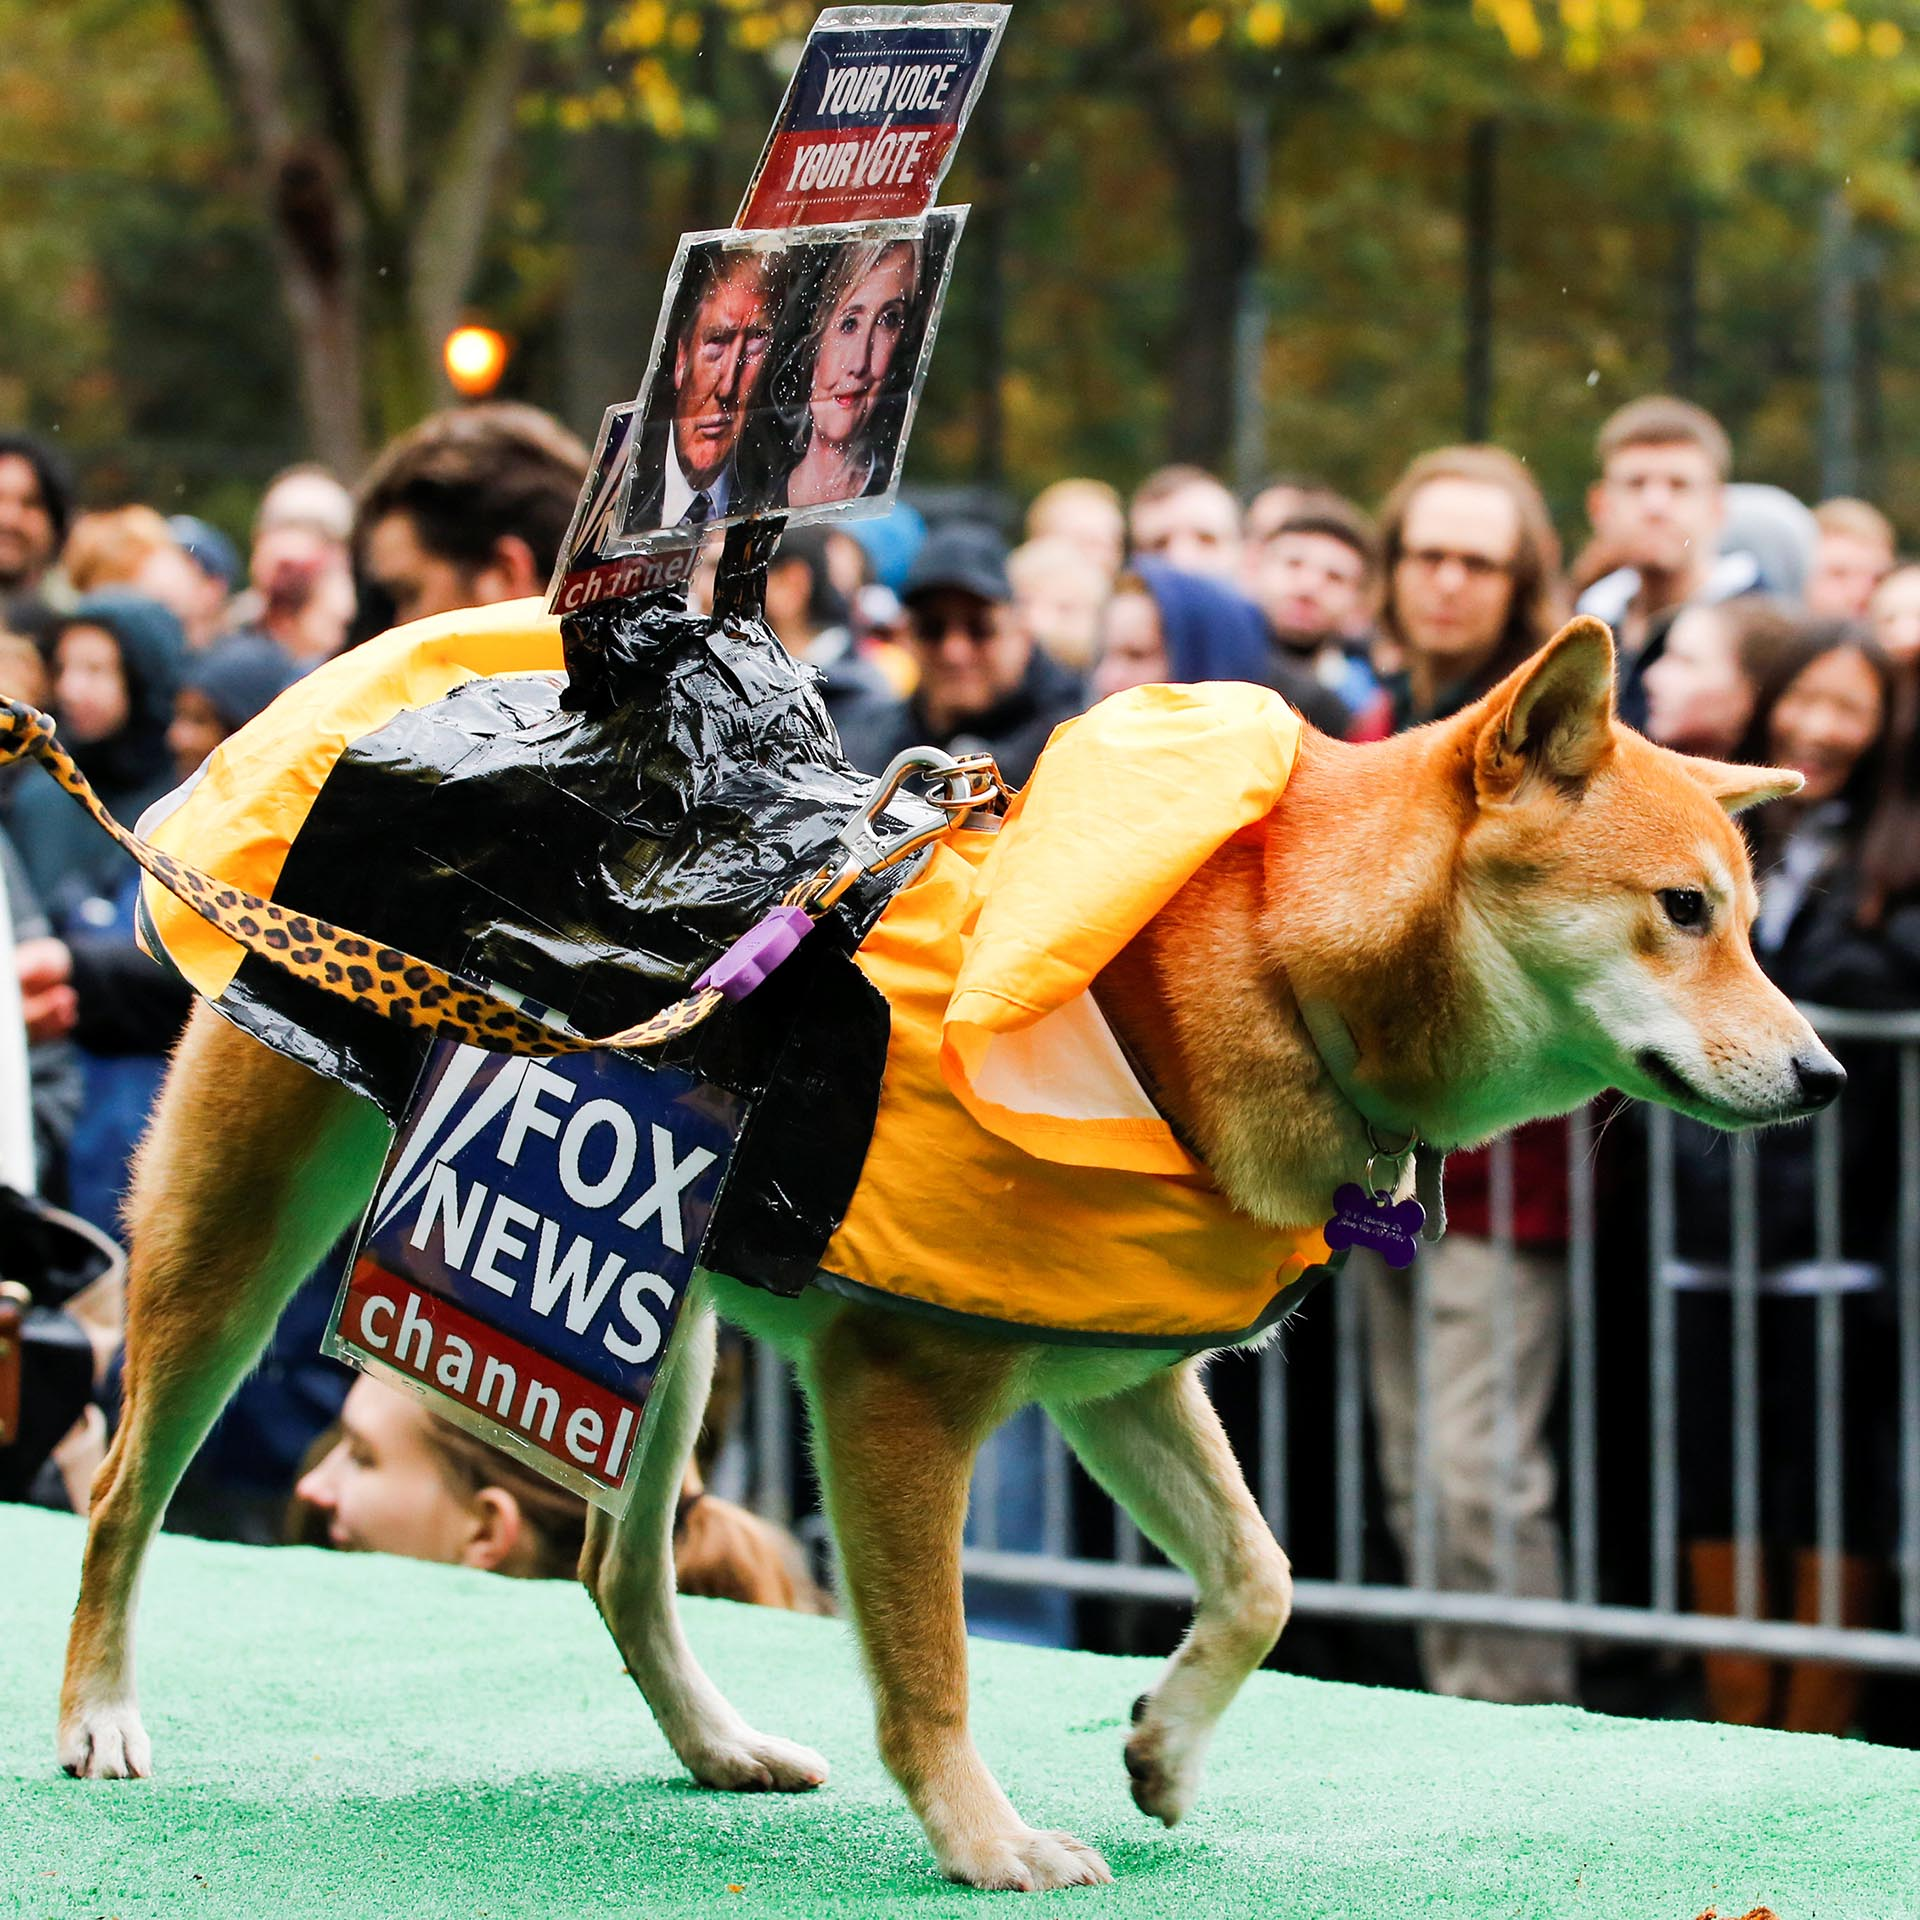 A dog dressed as Fox News channel takes part in the annual halloween dog in New York